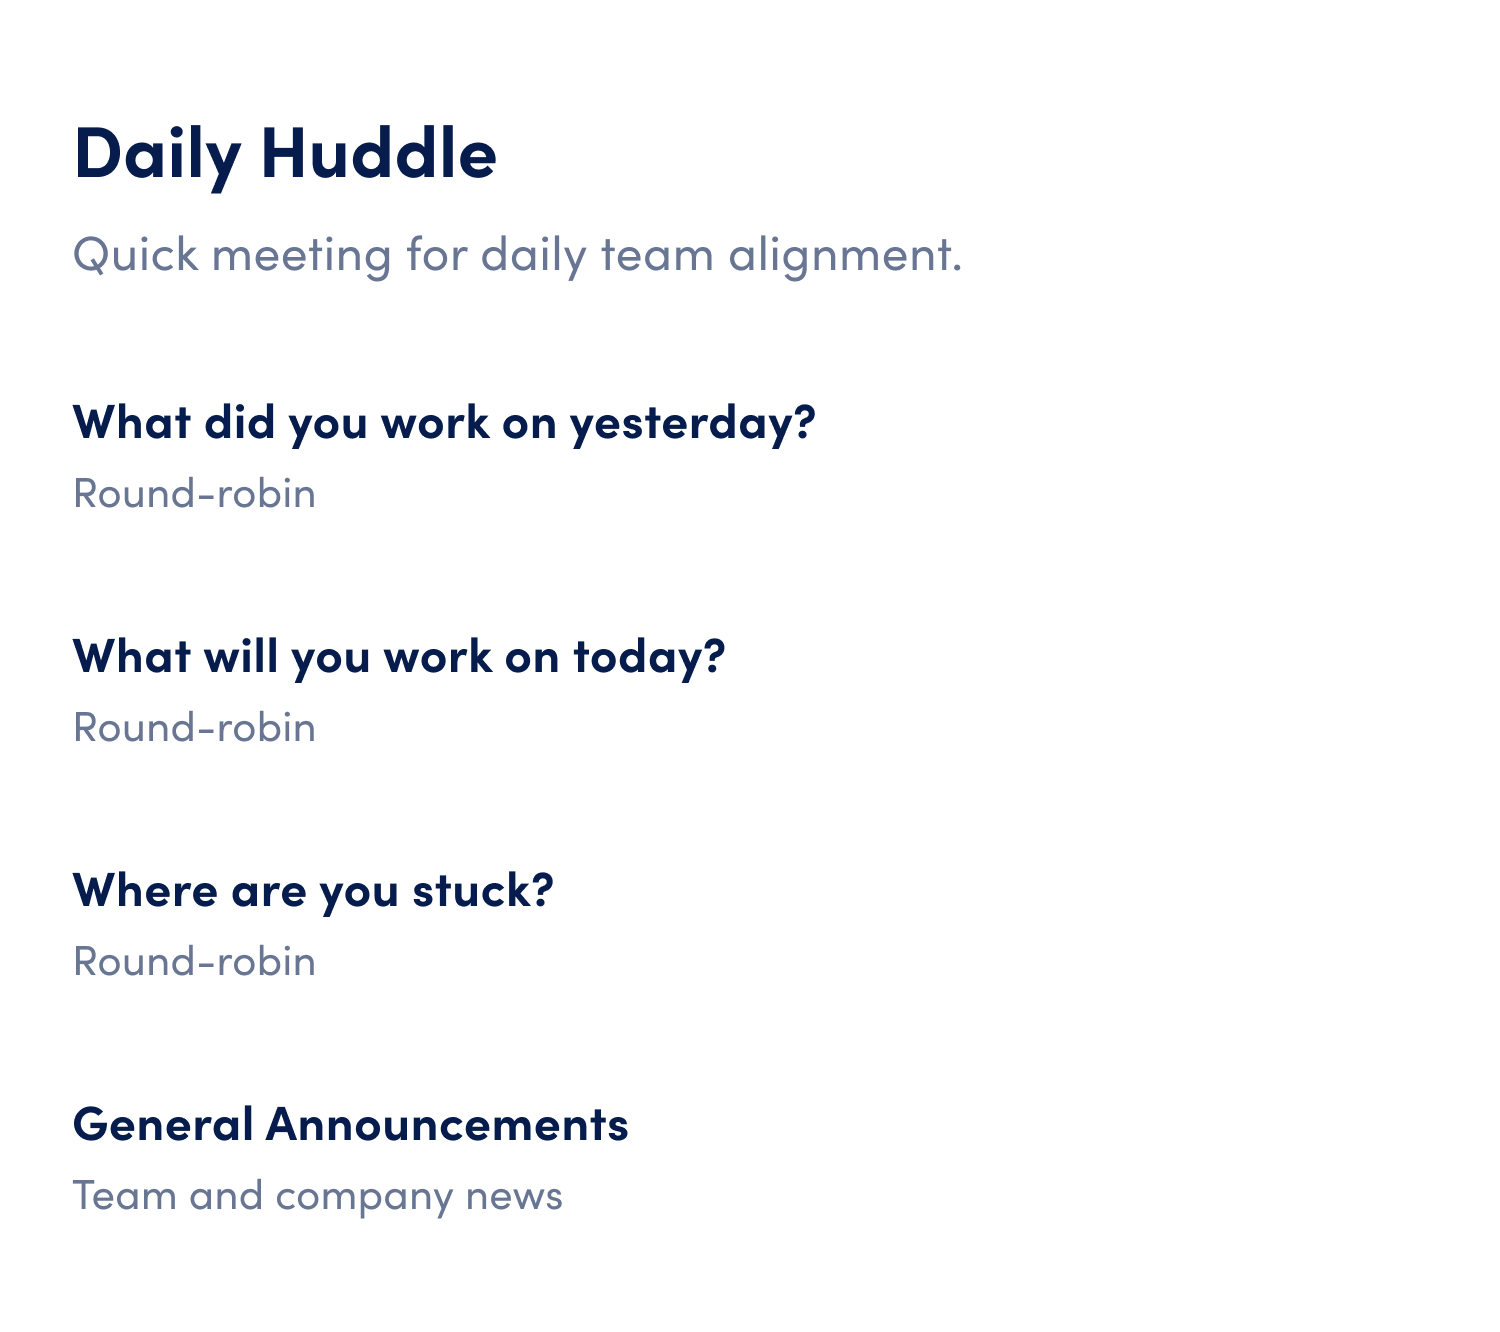 daily huddle meeting agenda template